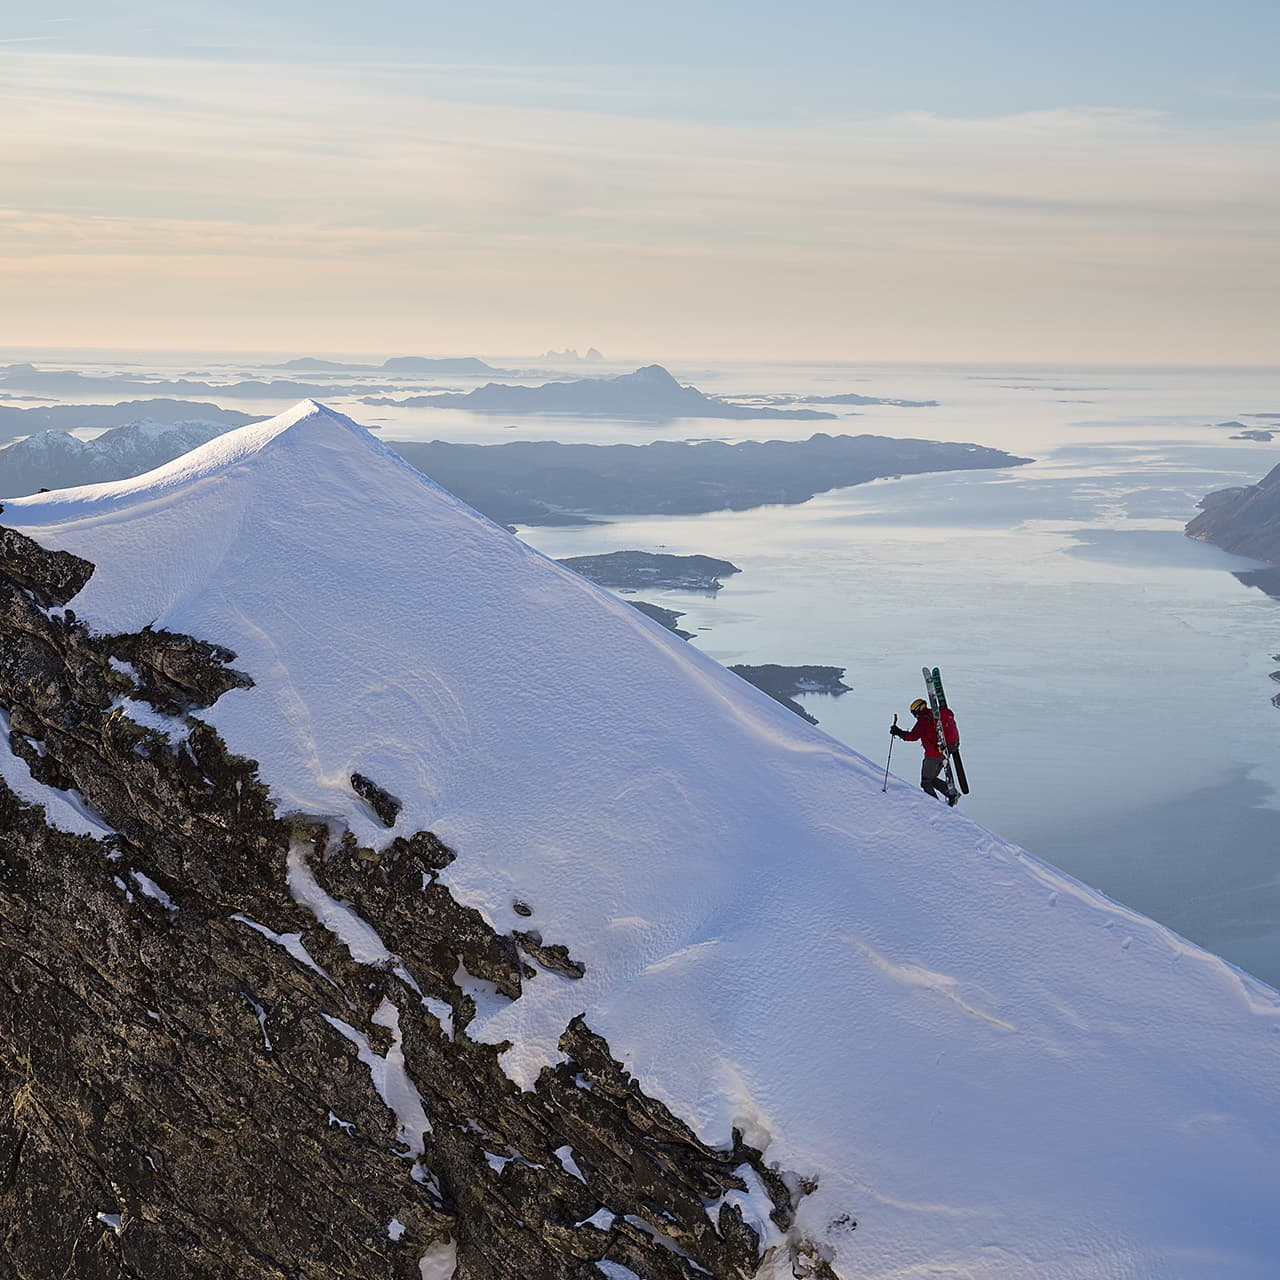 A peak in a Norwegian landscape; Johan Engebratt takes the final steps.